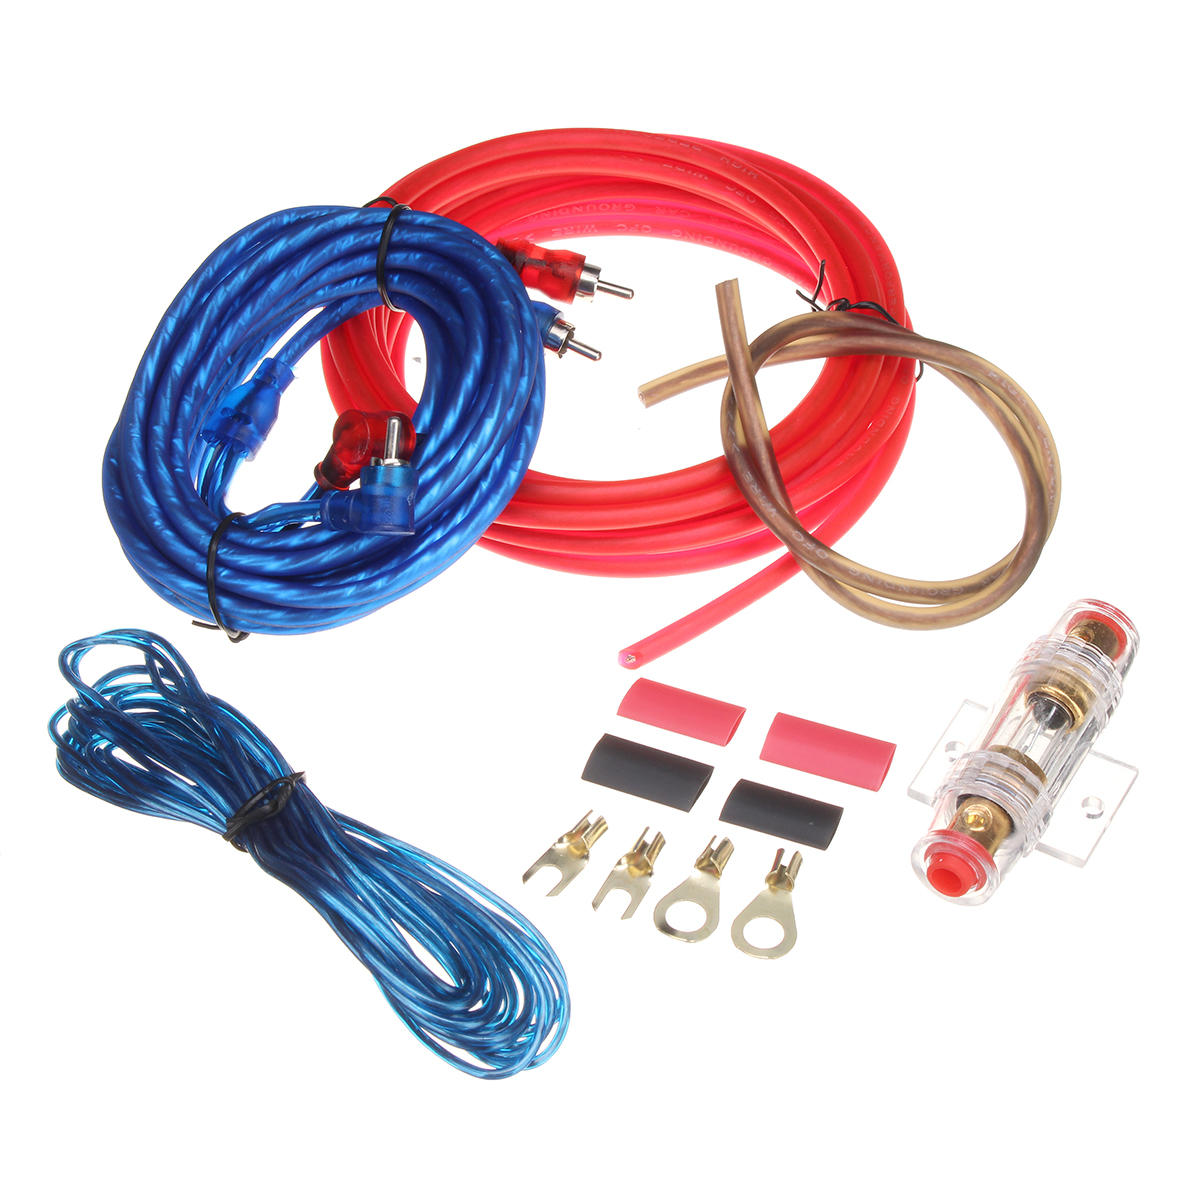 subs and amp wiring car audio subwoofer sub amplifier amp rca wiring kit power audio  car audio subwoofer sub amplifier amp